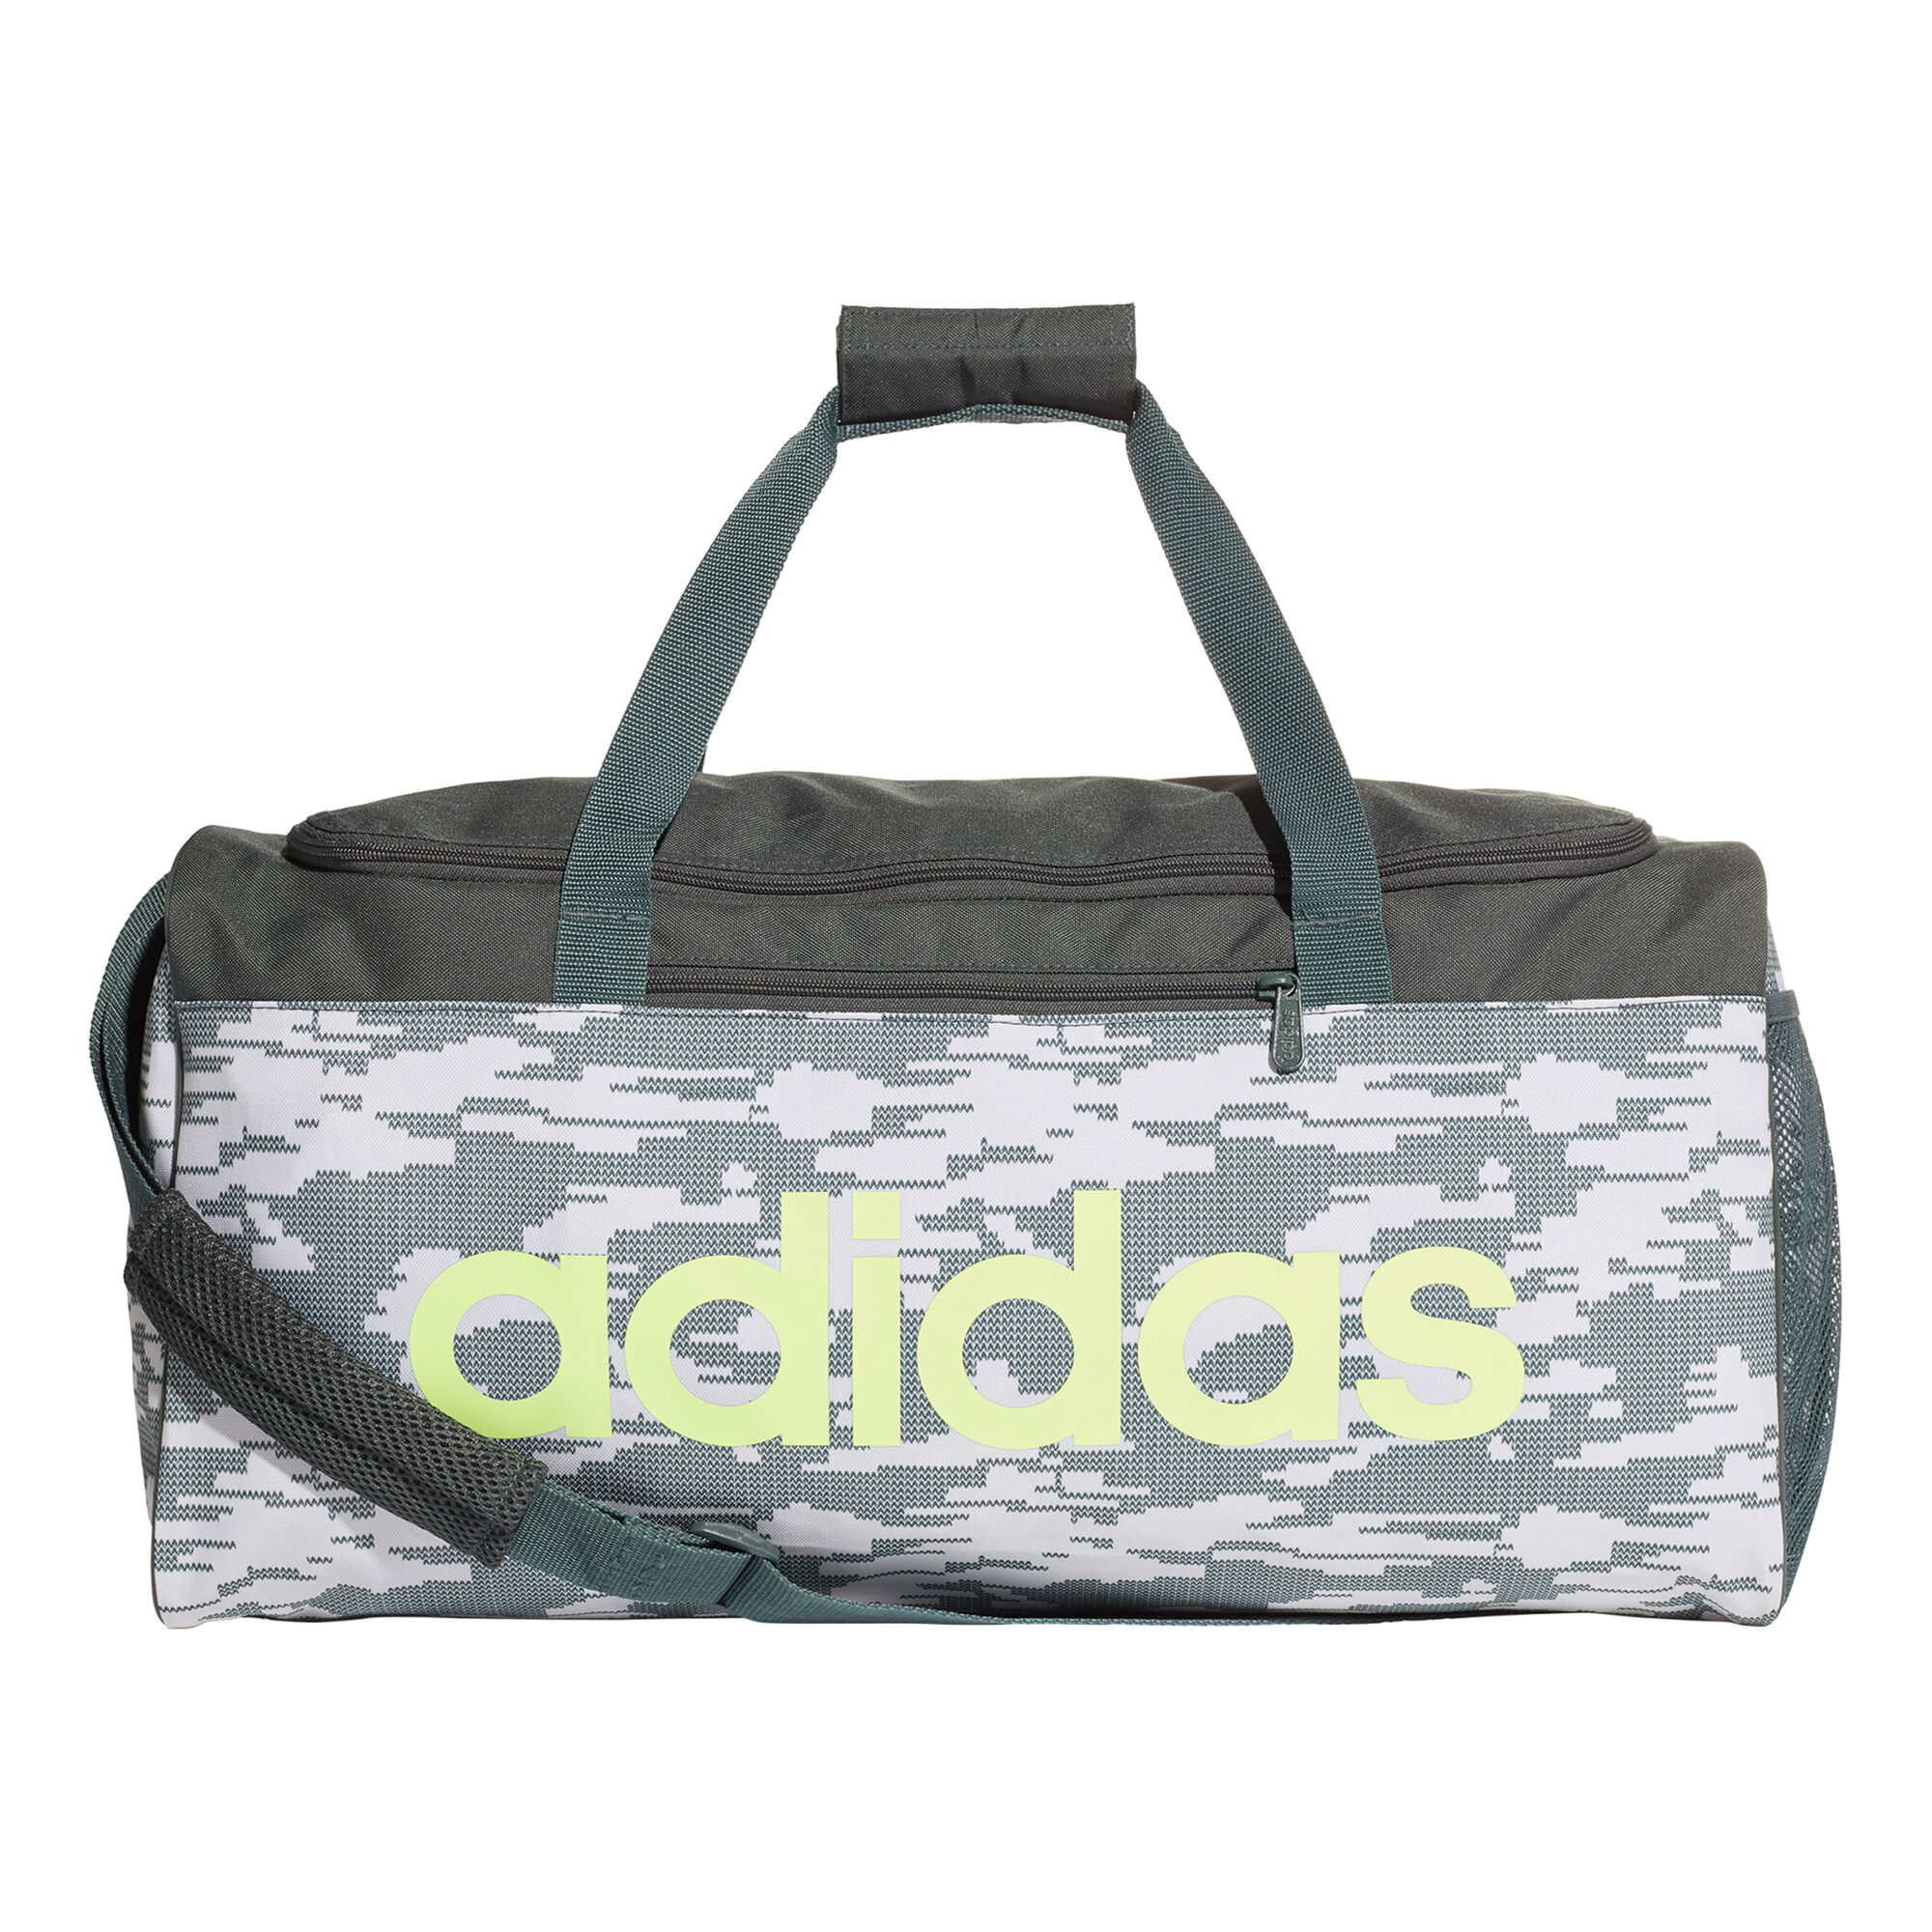 2551425d adidas · adidas · adidas · adidas · adidas · adidas · adidas · adidas.  Linear Core Graphic Duffel Bag ...